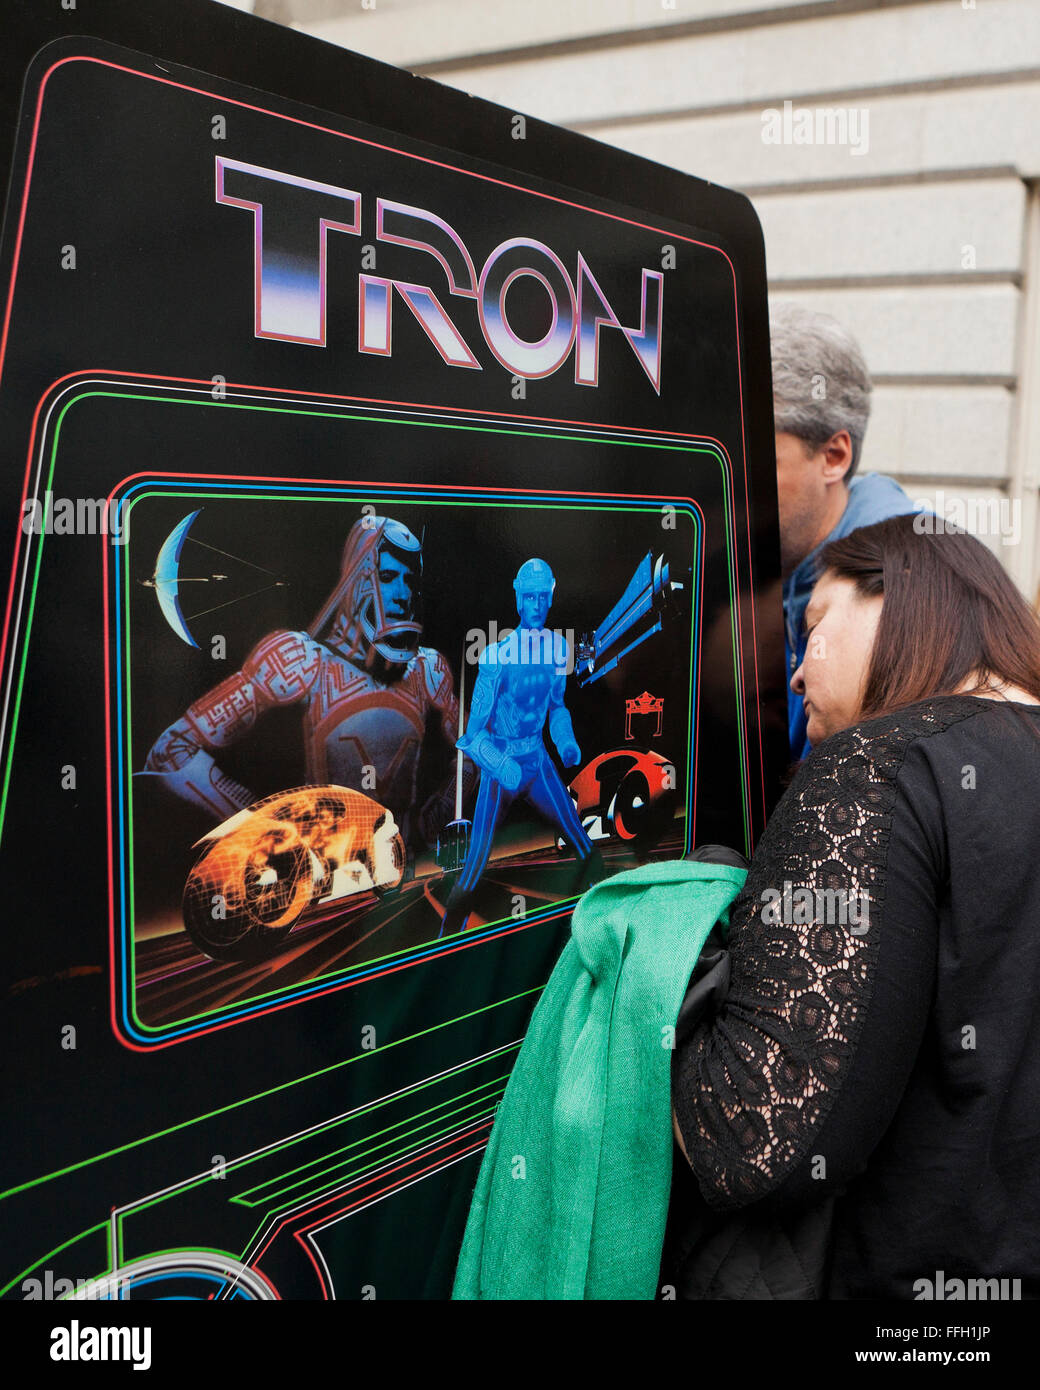 People playing Tron arcade video game - USA - Stock Image